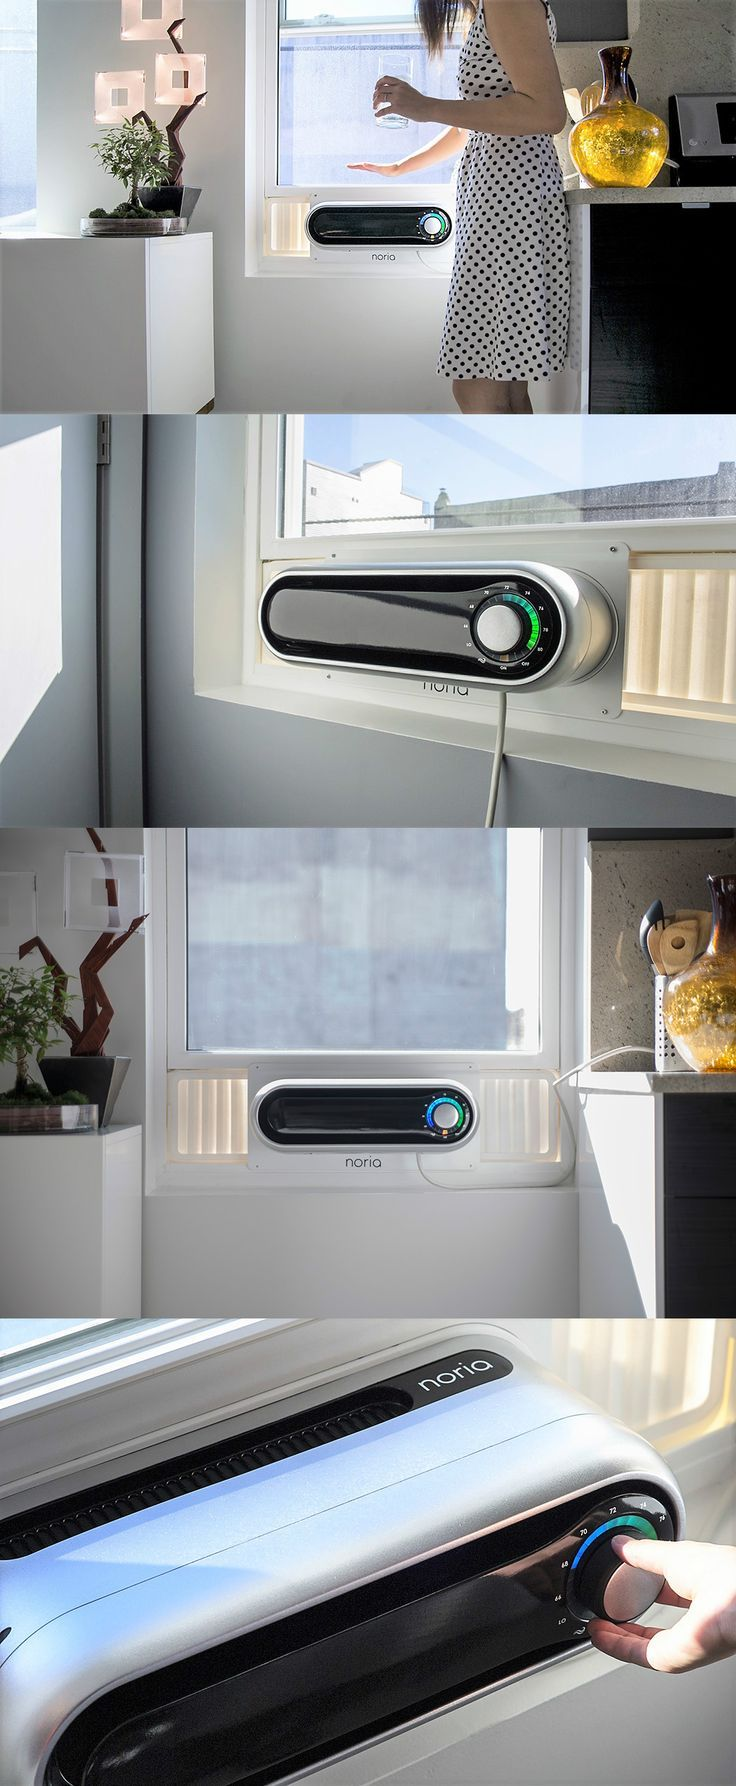 Best 25+ Tent air conditioner ideas on Pinterest | Small air ...